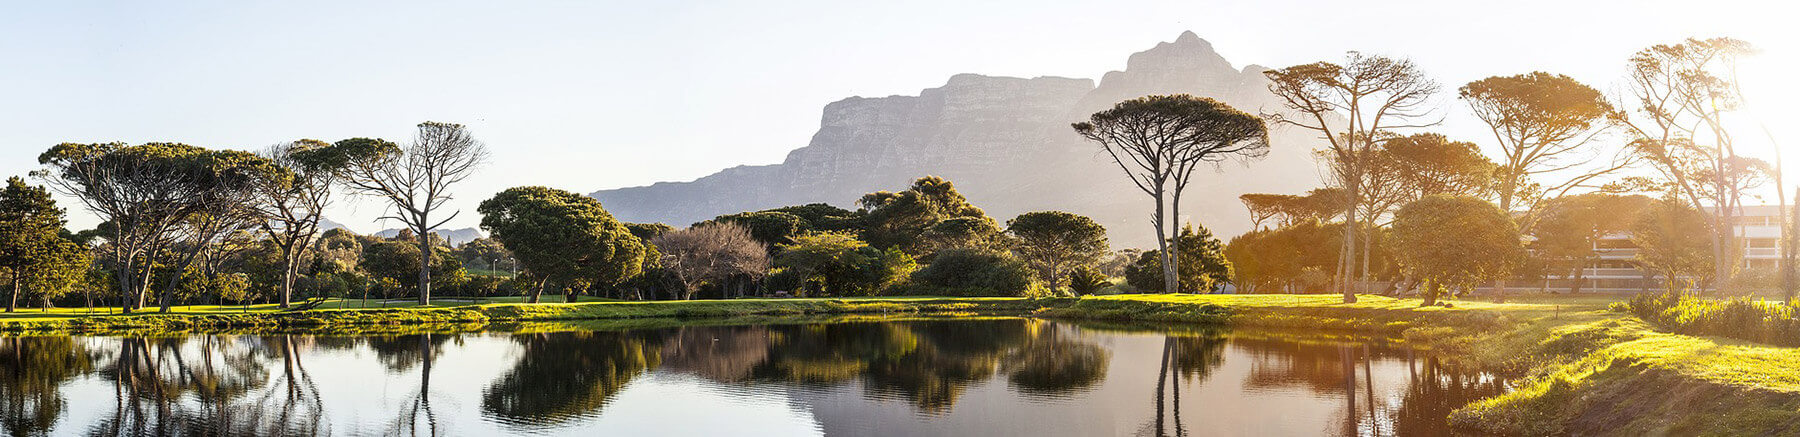 Lake and mountain view in South Africa